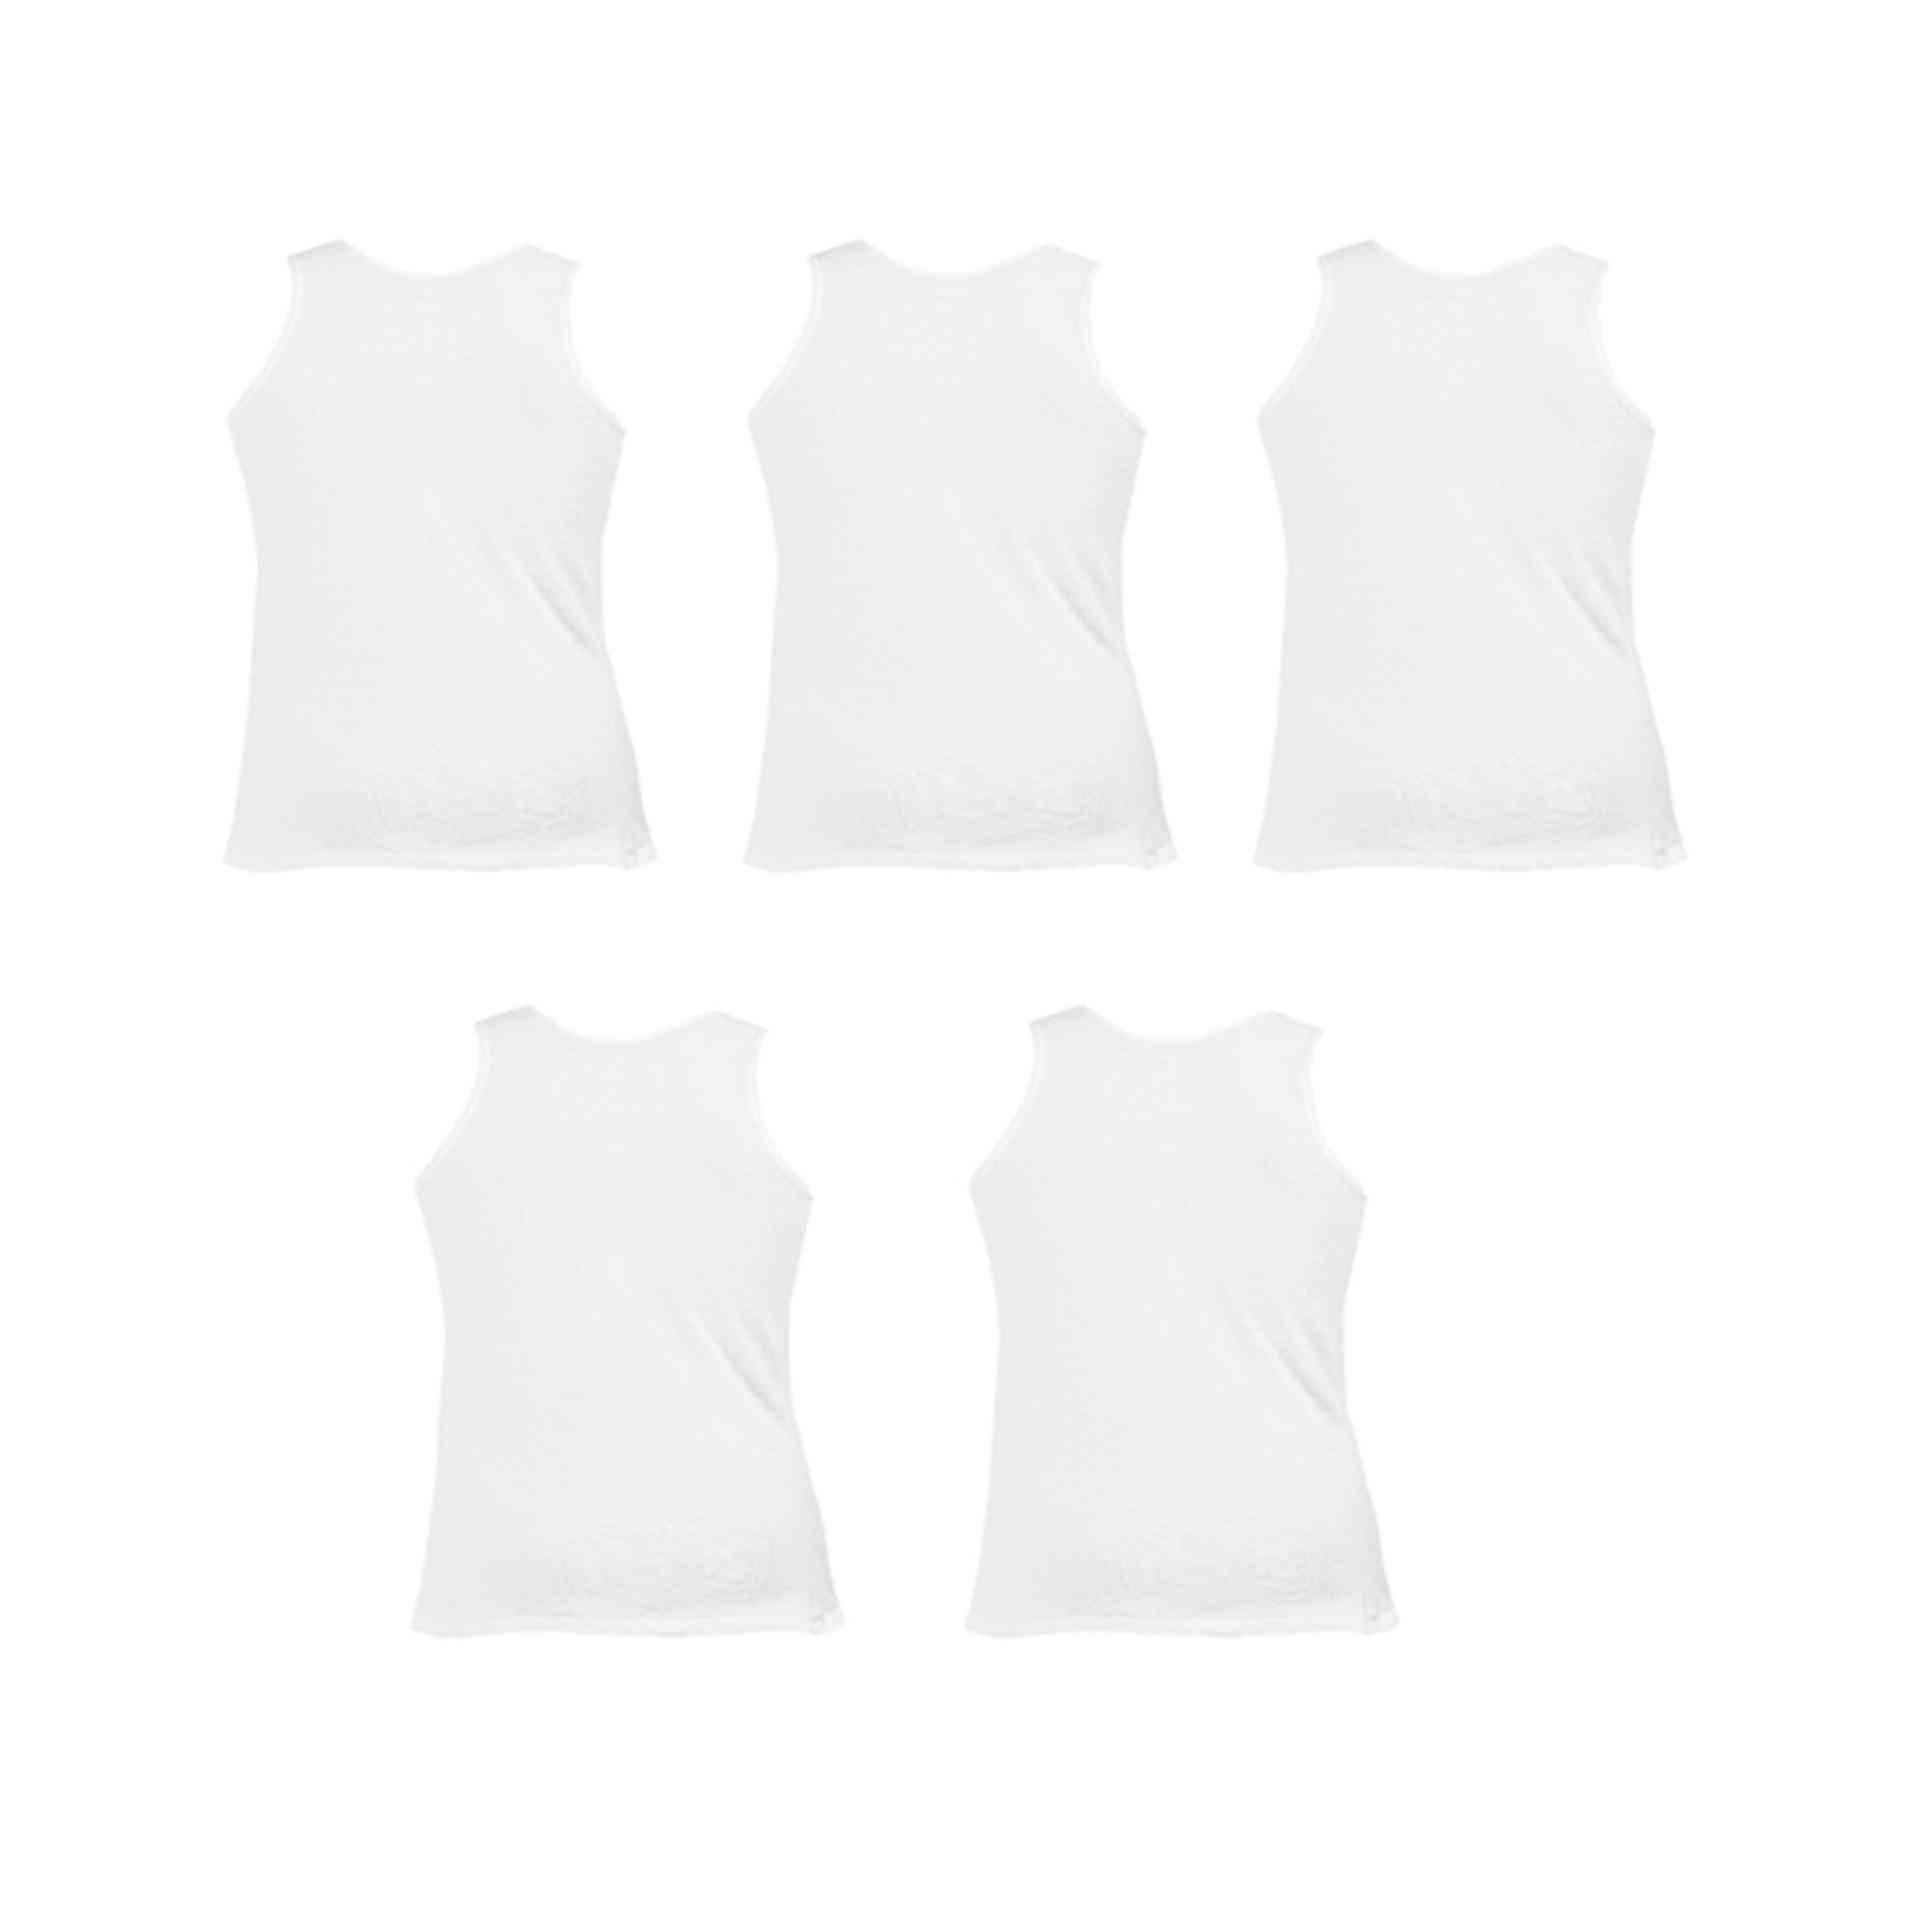 Daisy Luxury Pack of 5 Pure Cotton Vest for Men - White